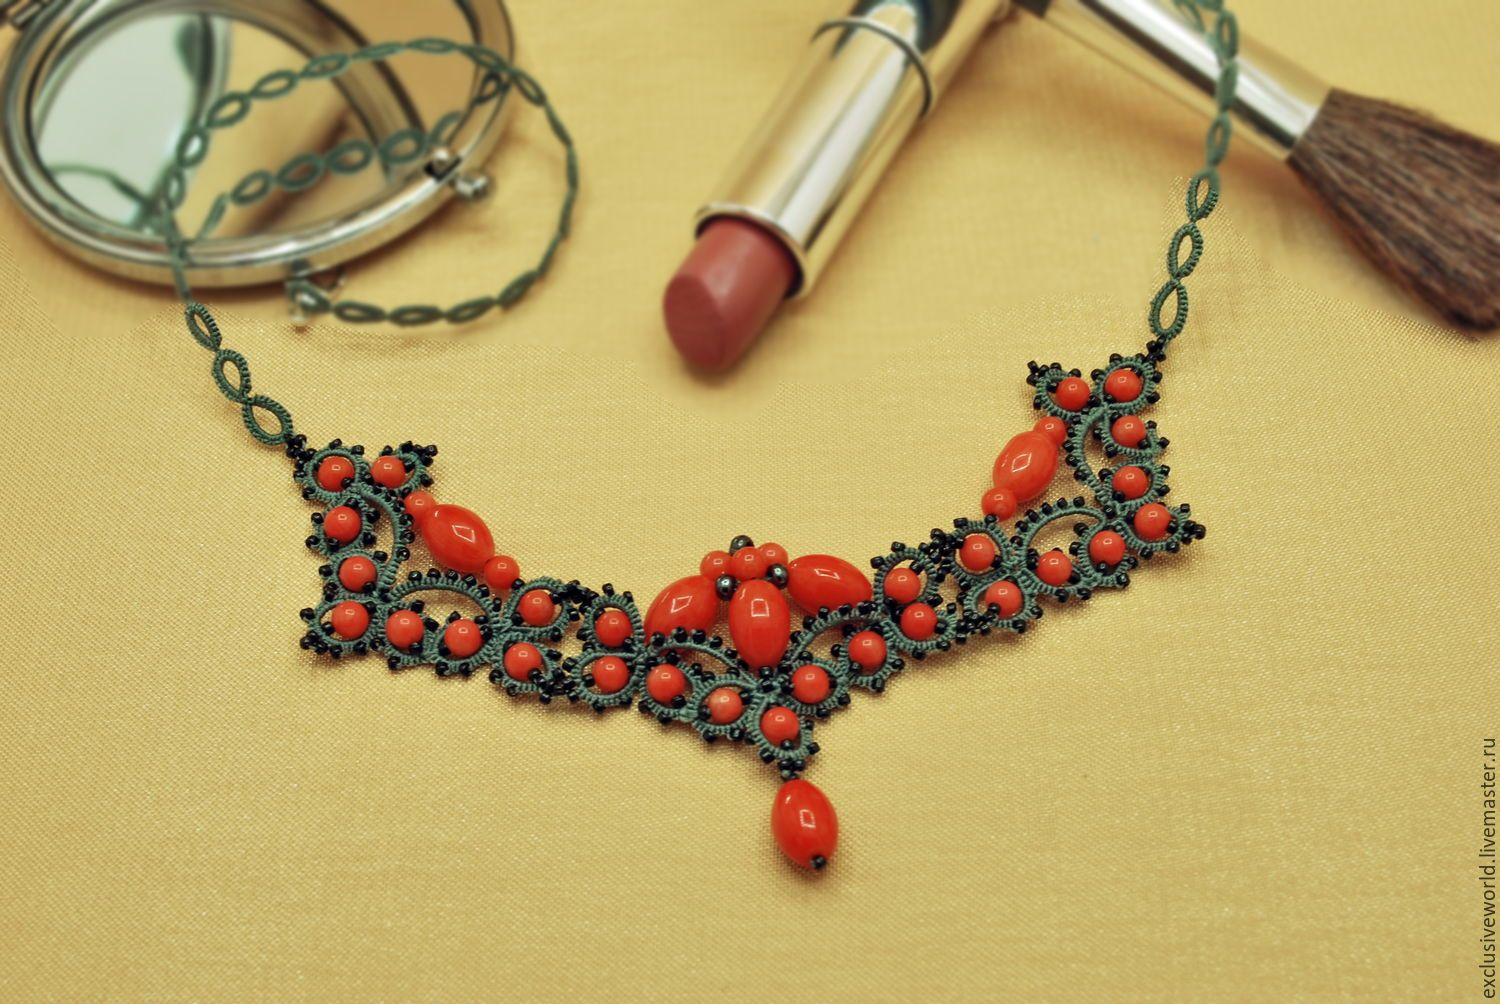 Ручная работа, handmade (With images) | Tatting necklace ...